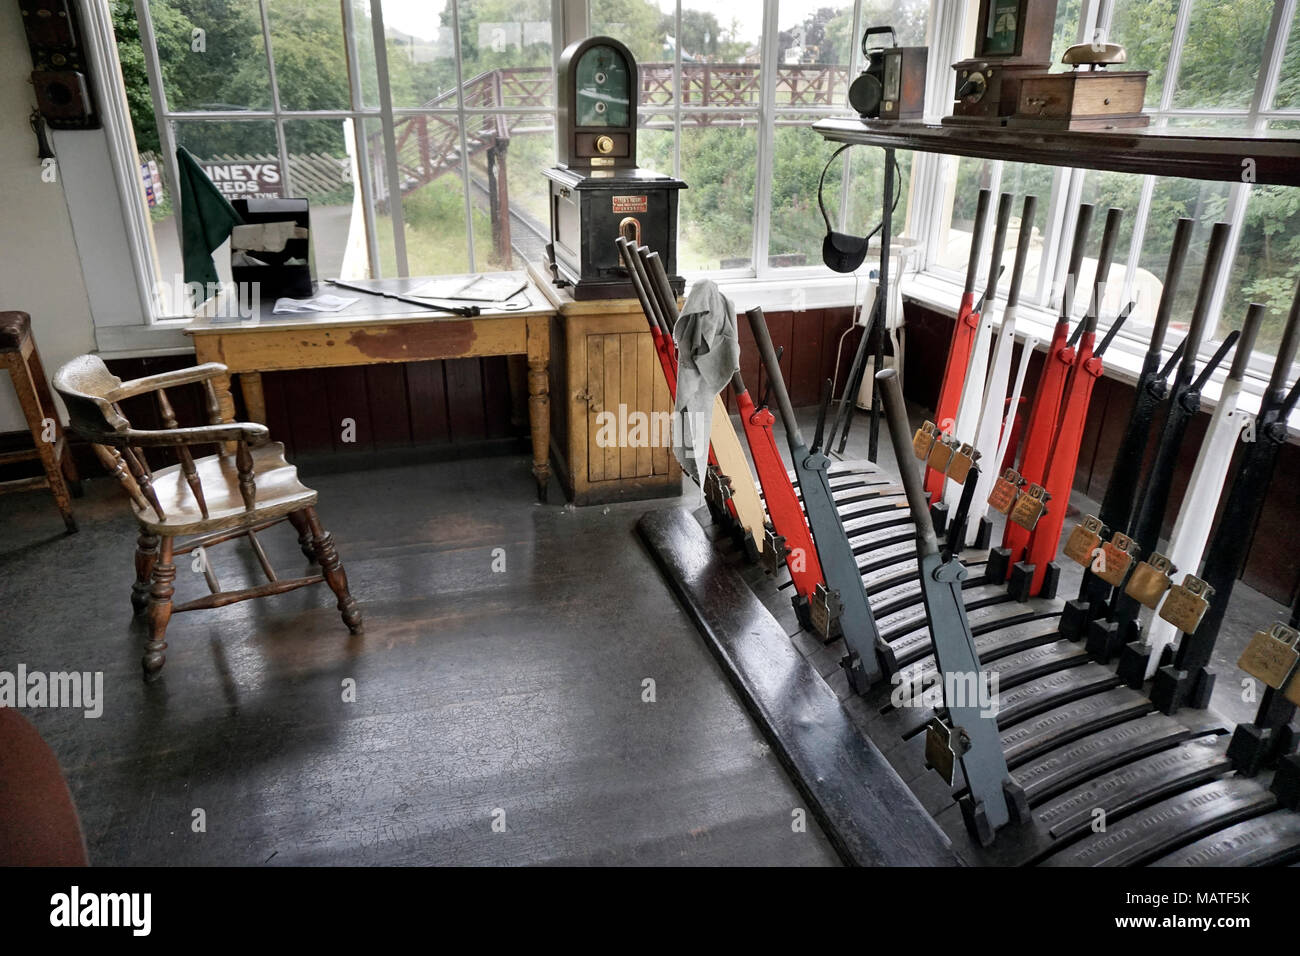 interior of old railway signal box - Stock Image